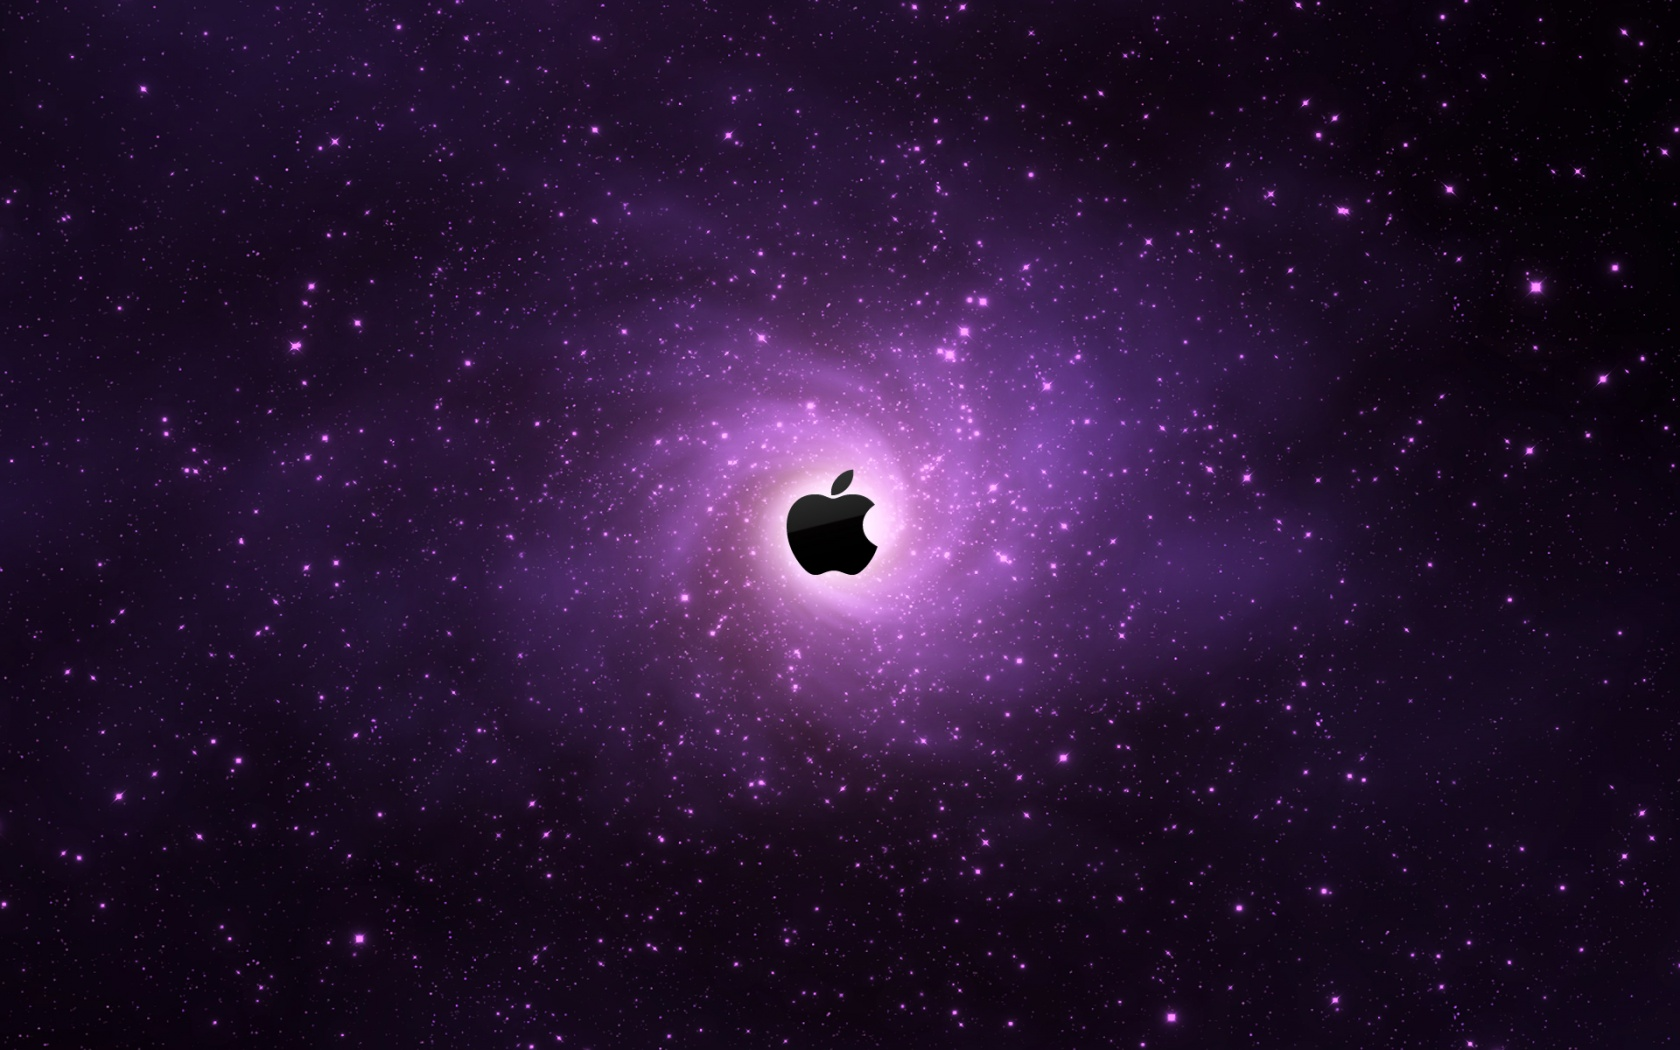 fond d 39 cran logo apple galaxie violette gratuit fonds cran logo apple galaxie violette. Black Bedroom Furniture Sets. Home Design Ideas